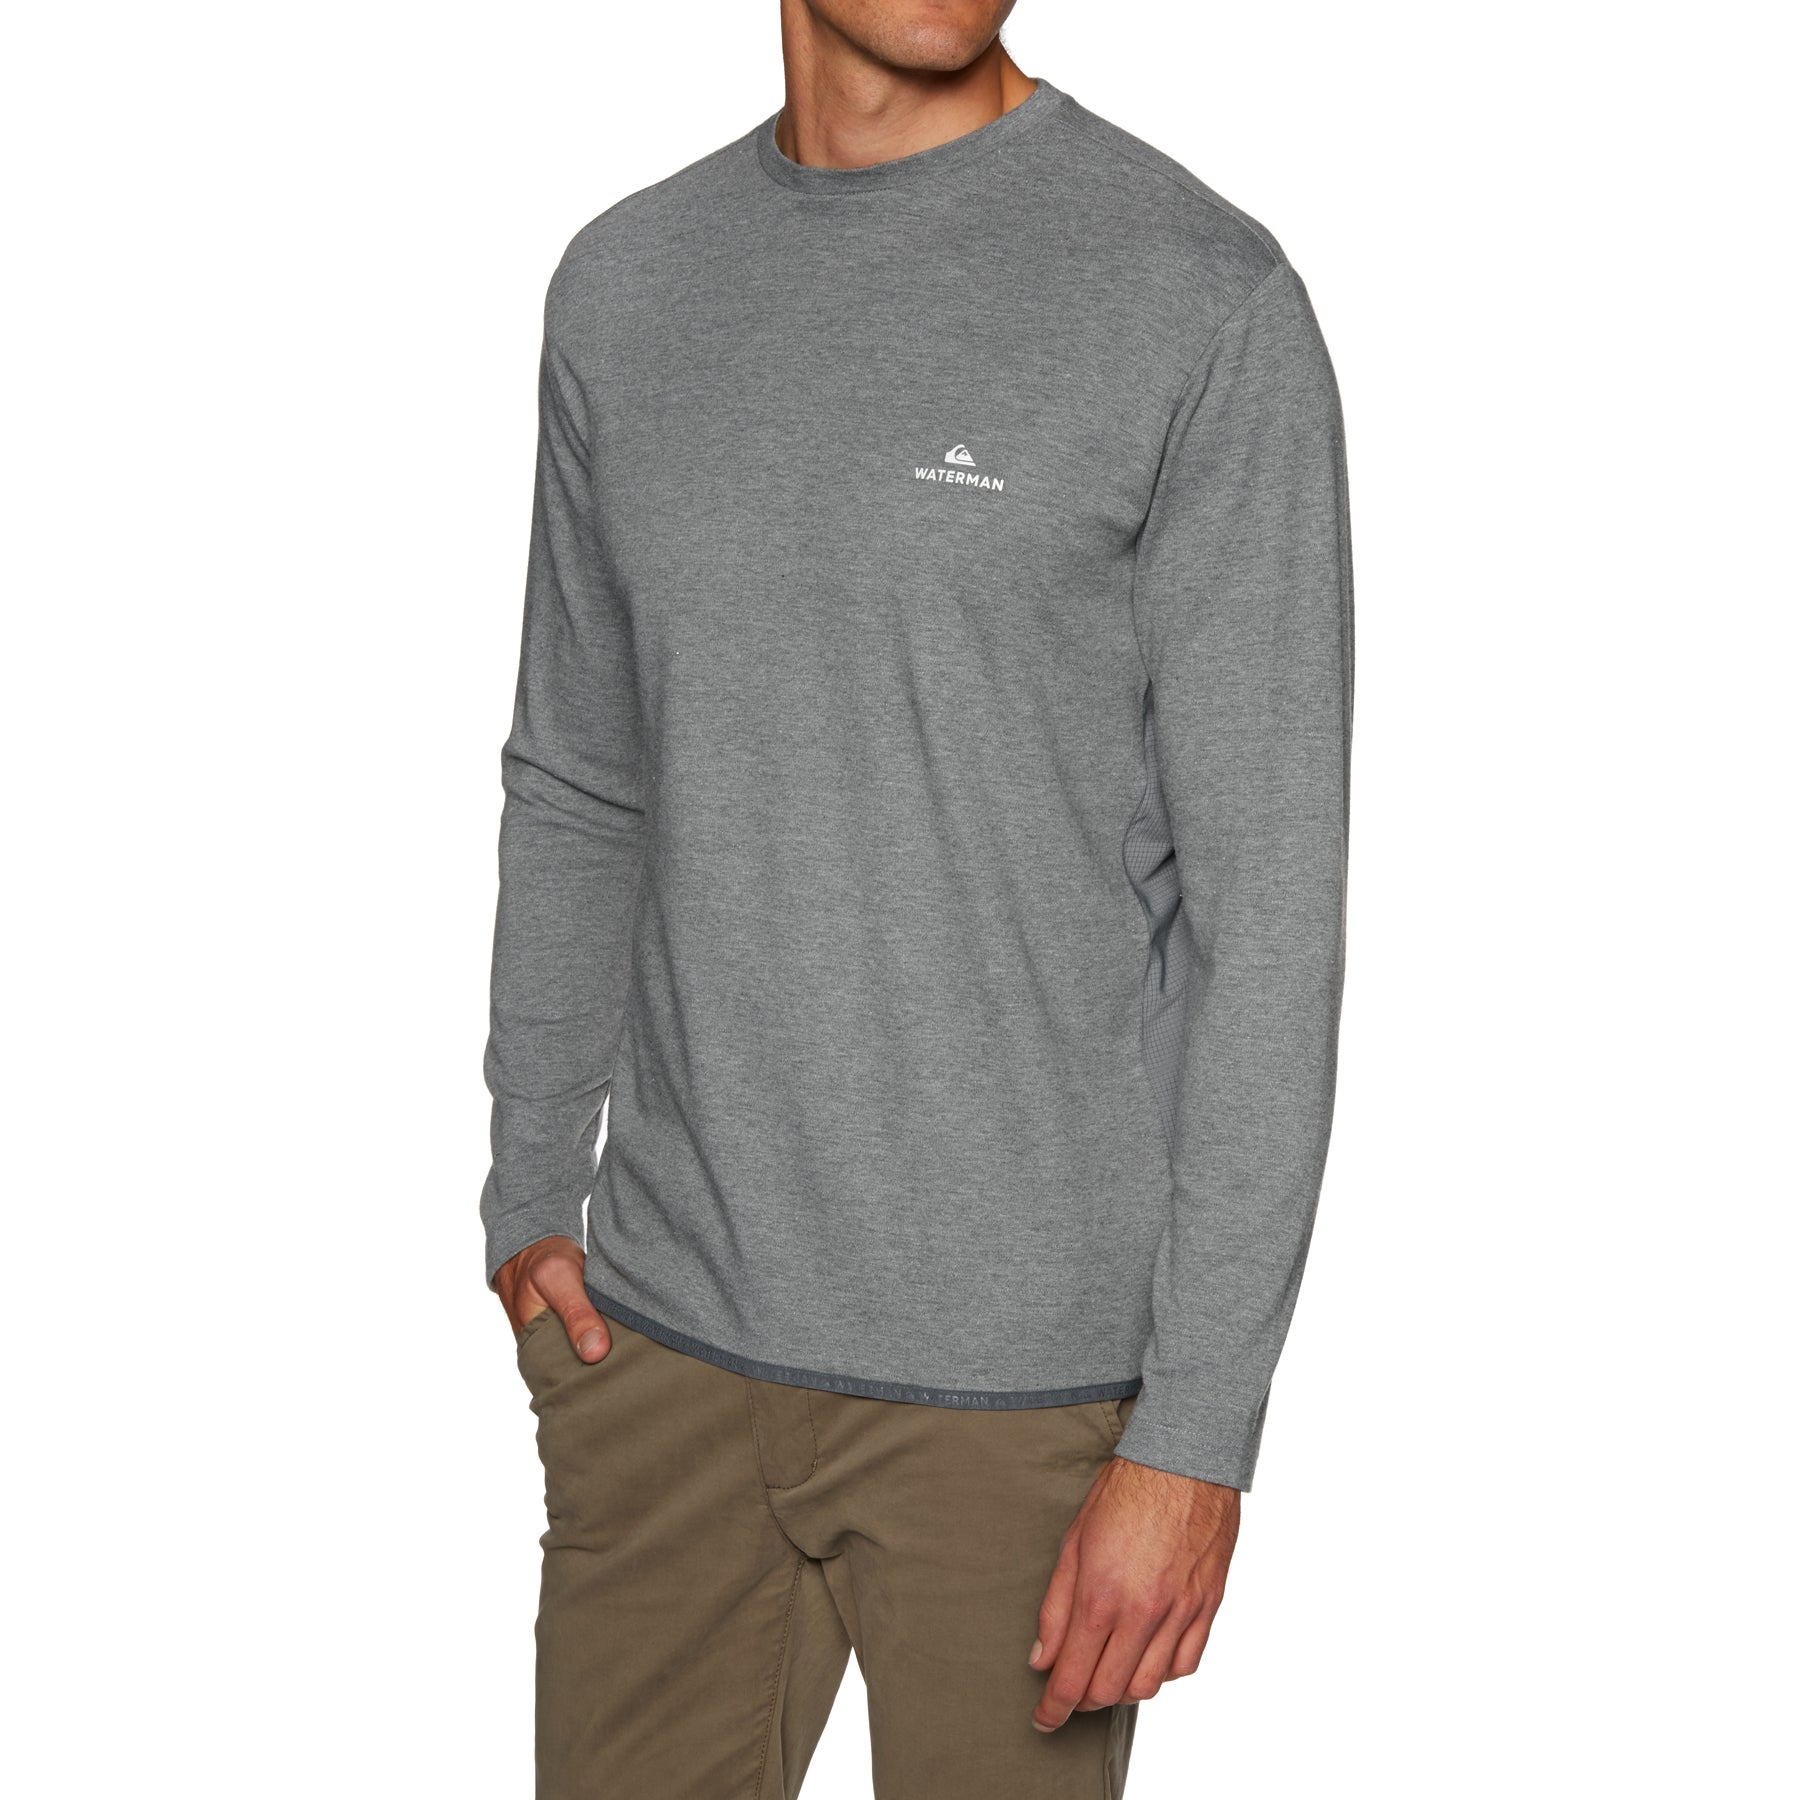 Quiksilver Waterman Sea Hound Sweater